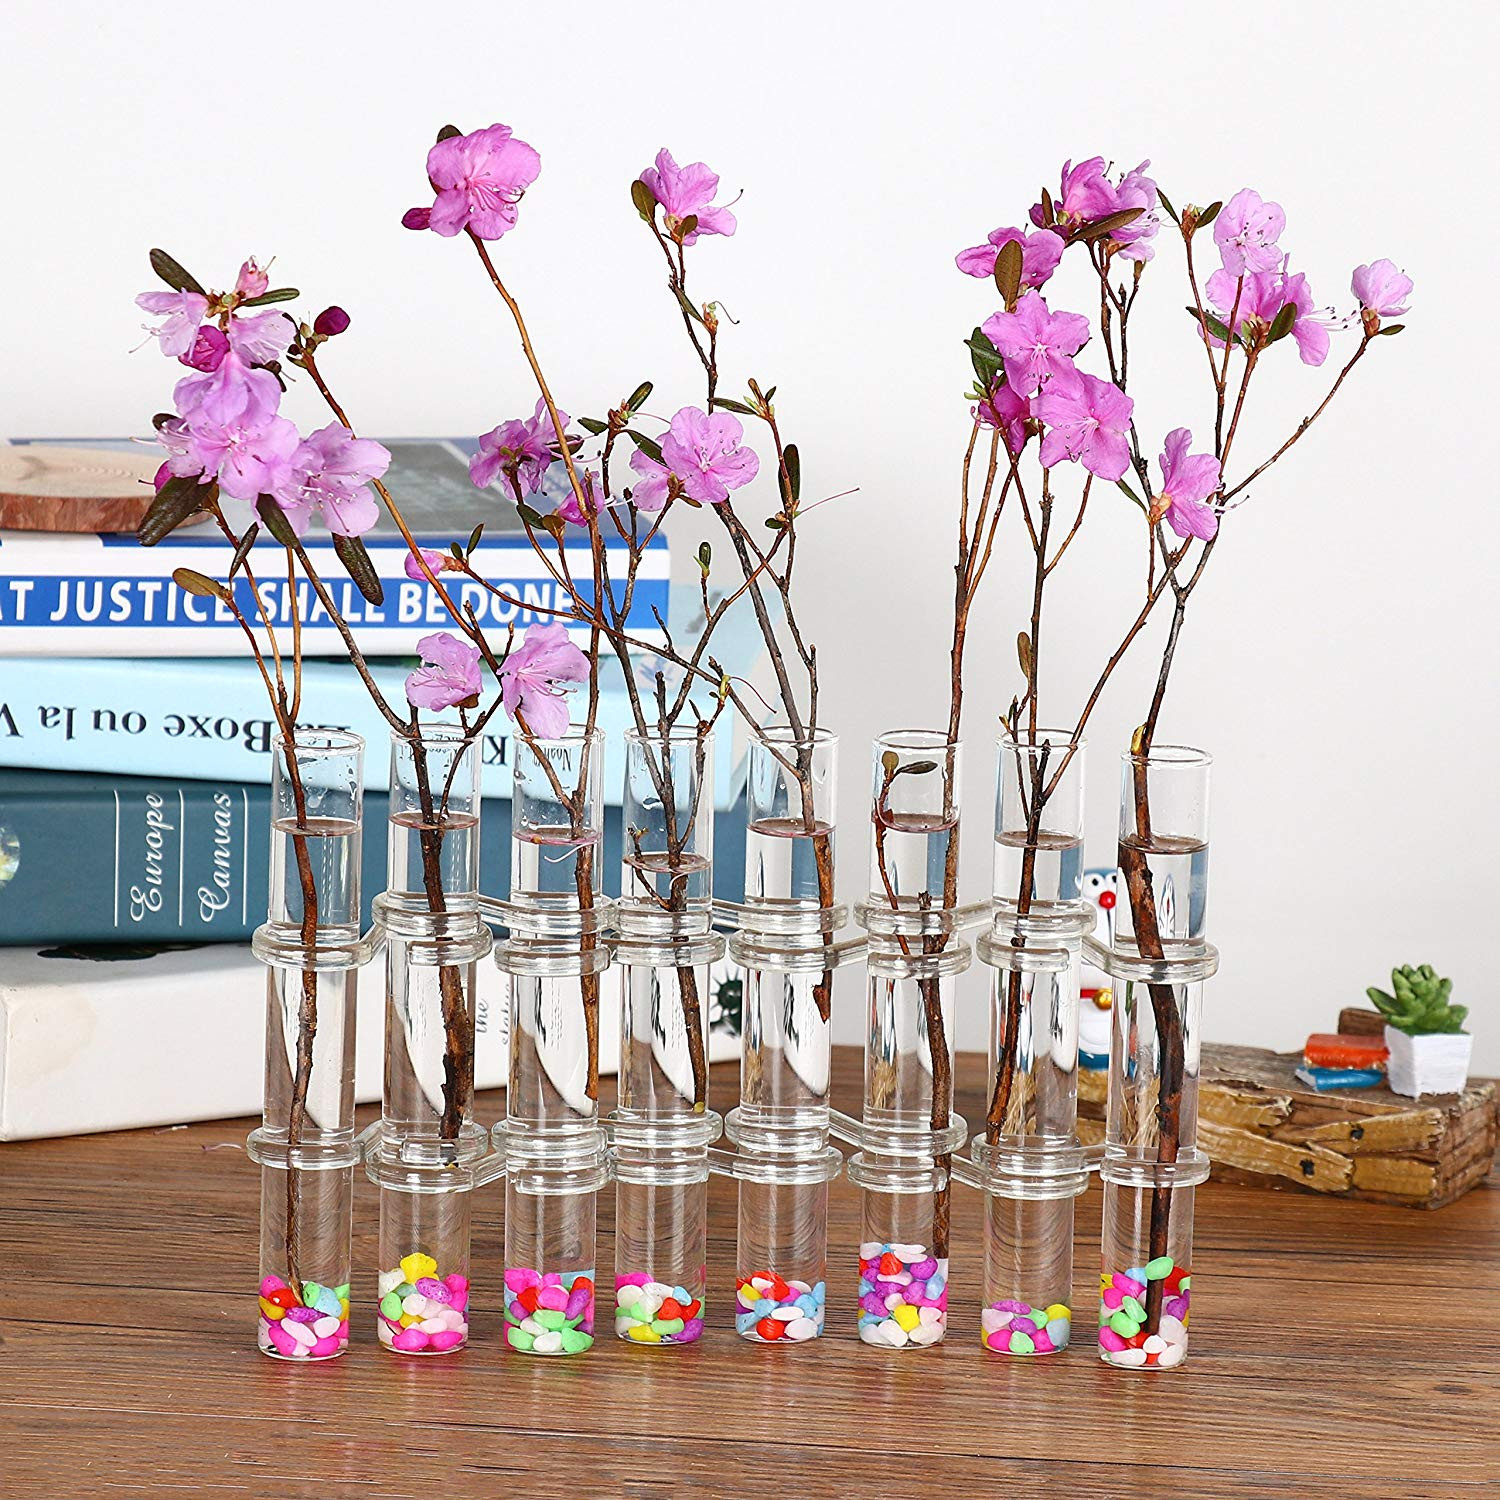 test tube flower vase glass of ivolador 8 crystal glass test tube vase flower pots for hydroponic intended for ivolador 8 crystal glass test tube vase flower pots for hydroponic plants home garden decoration amazon ca patio lawn garden